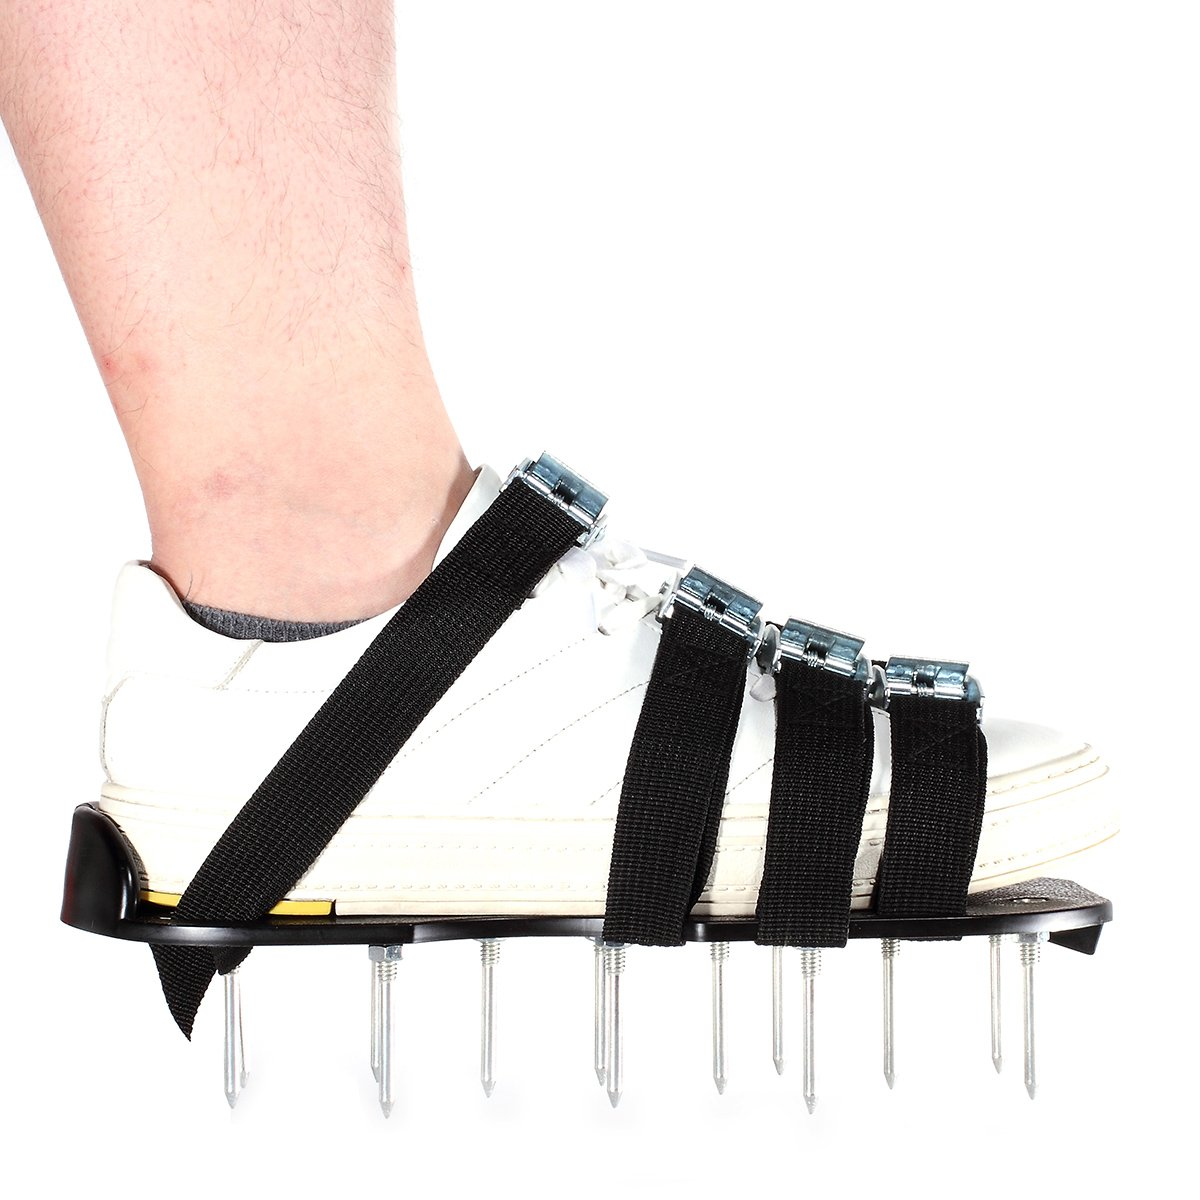 Dulcii Lawn Aerator Shoes with Heavy Duty Metal Buckles and 4 Adjustable Durable Straps, Free Size for Aerating Yard, Law and Grass by Dulcii (Image #2)